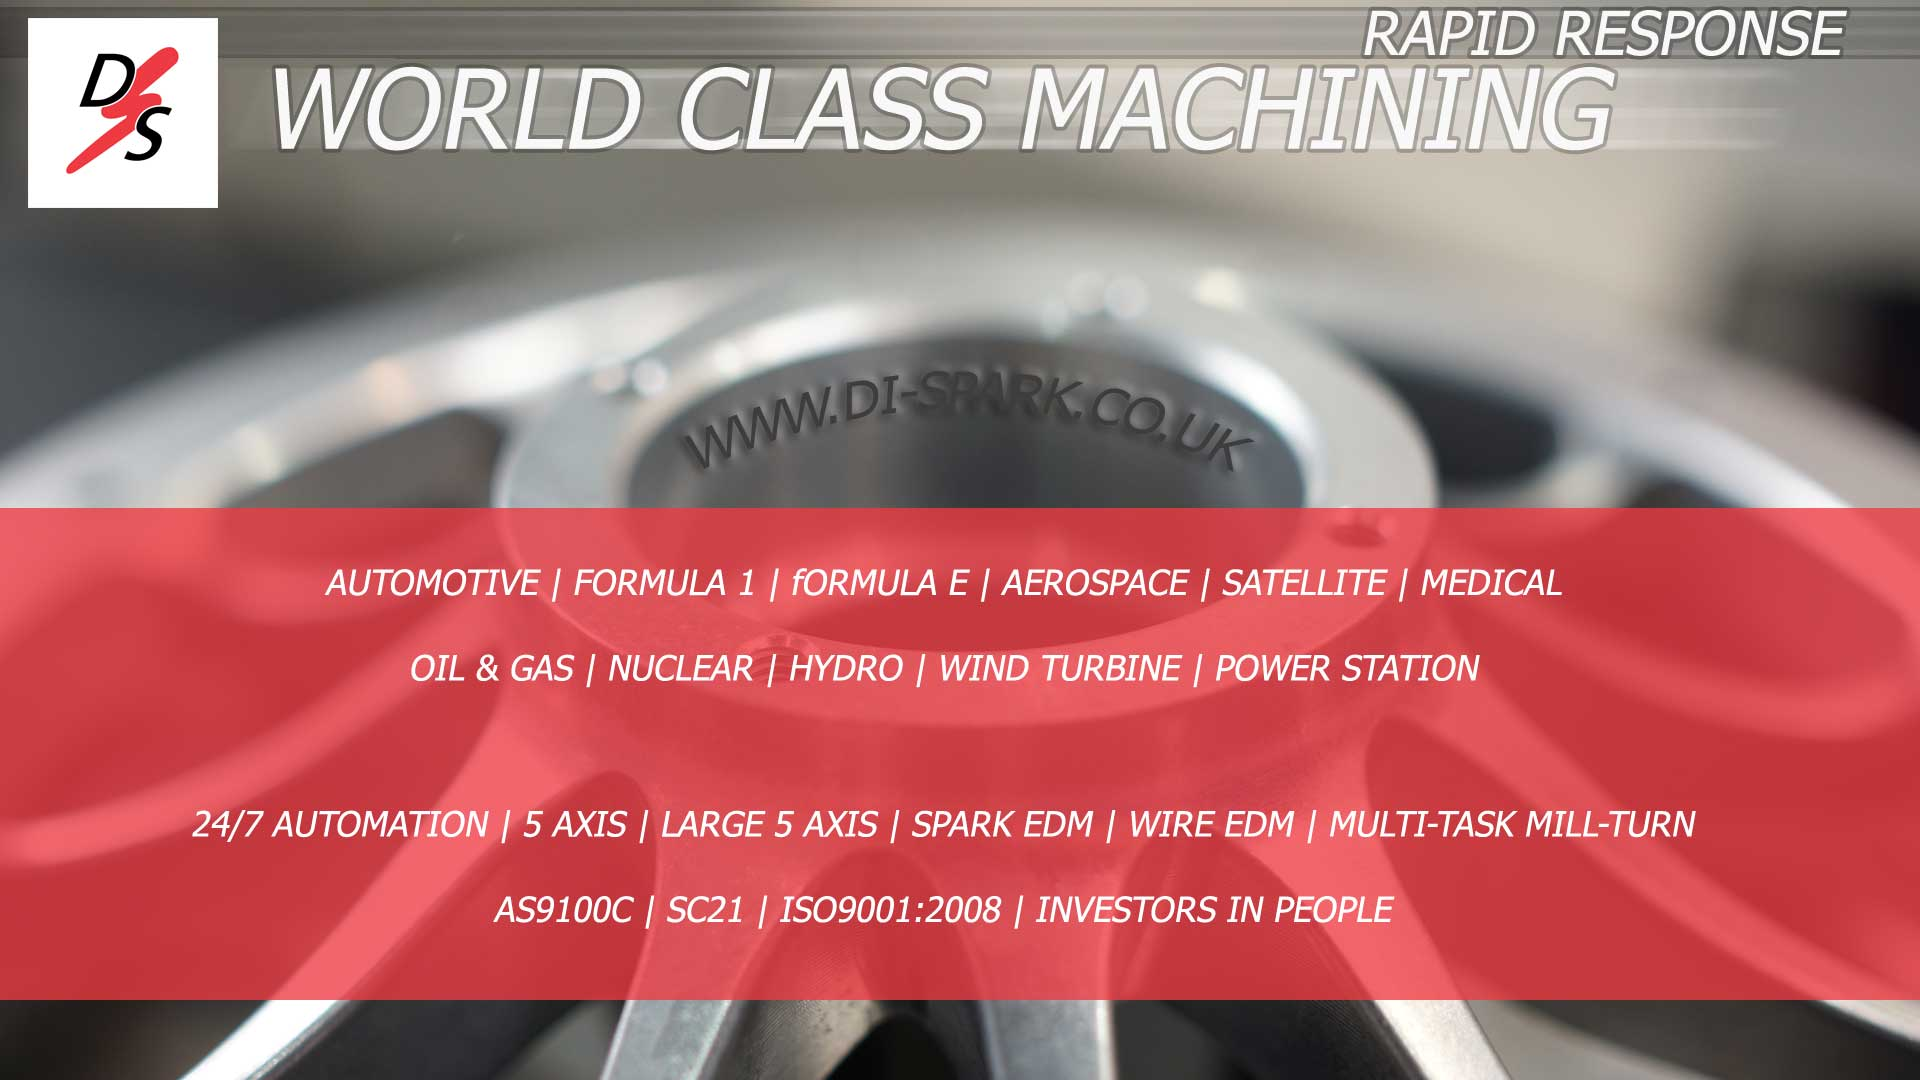 rapid response automotive machining and just in time machining